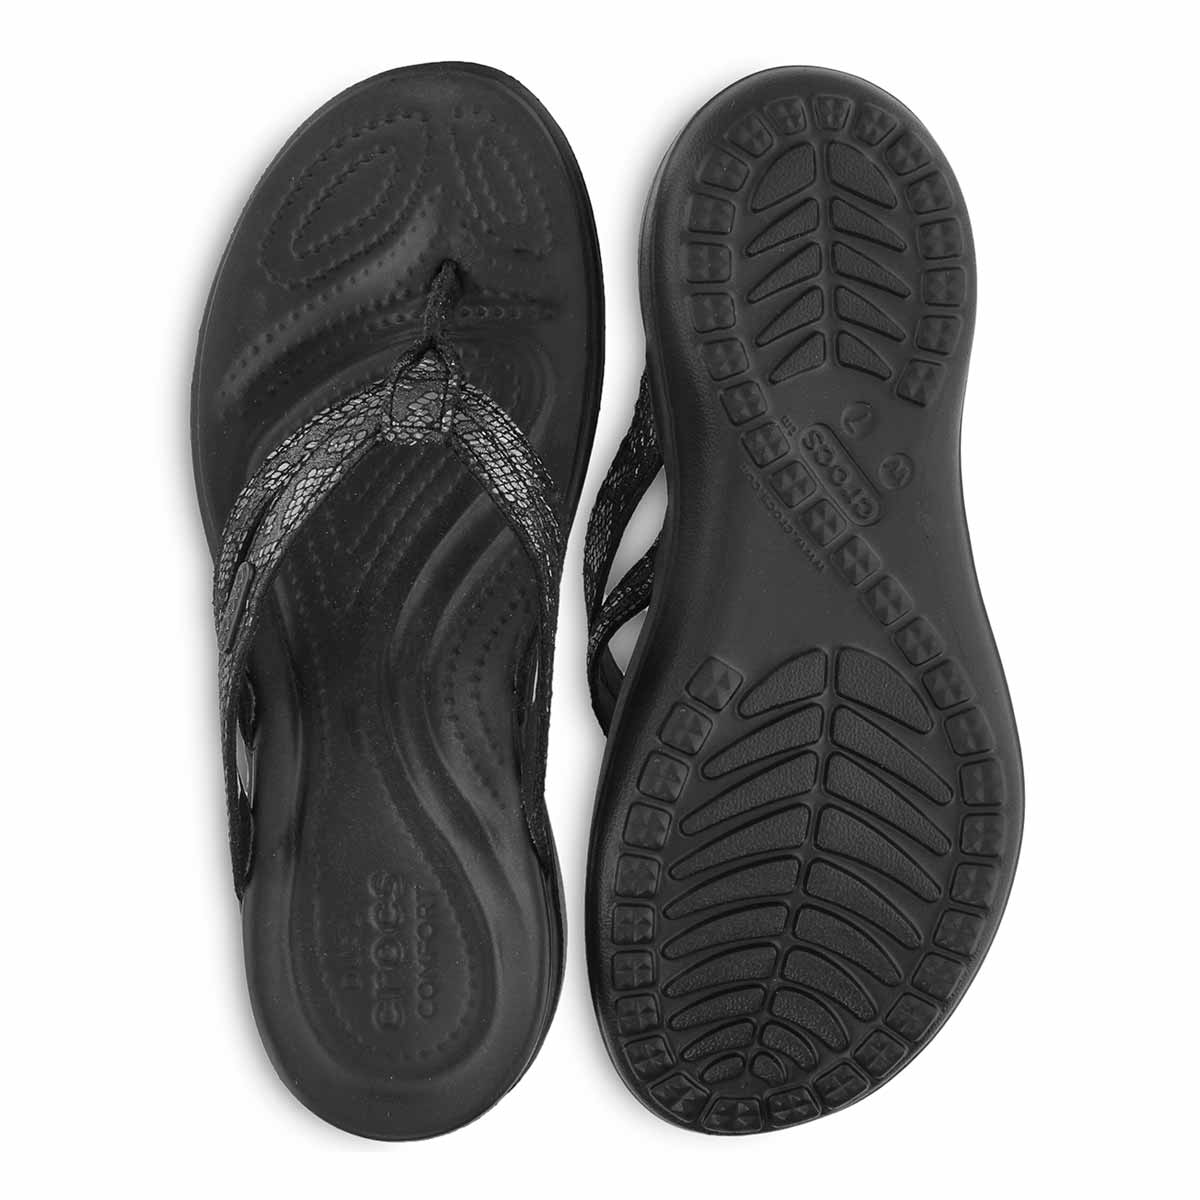 Lds Capri Strappy black thong sandal